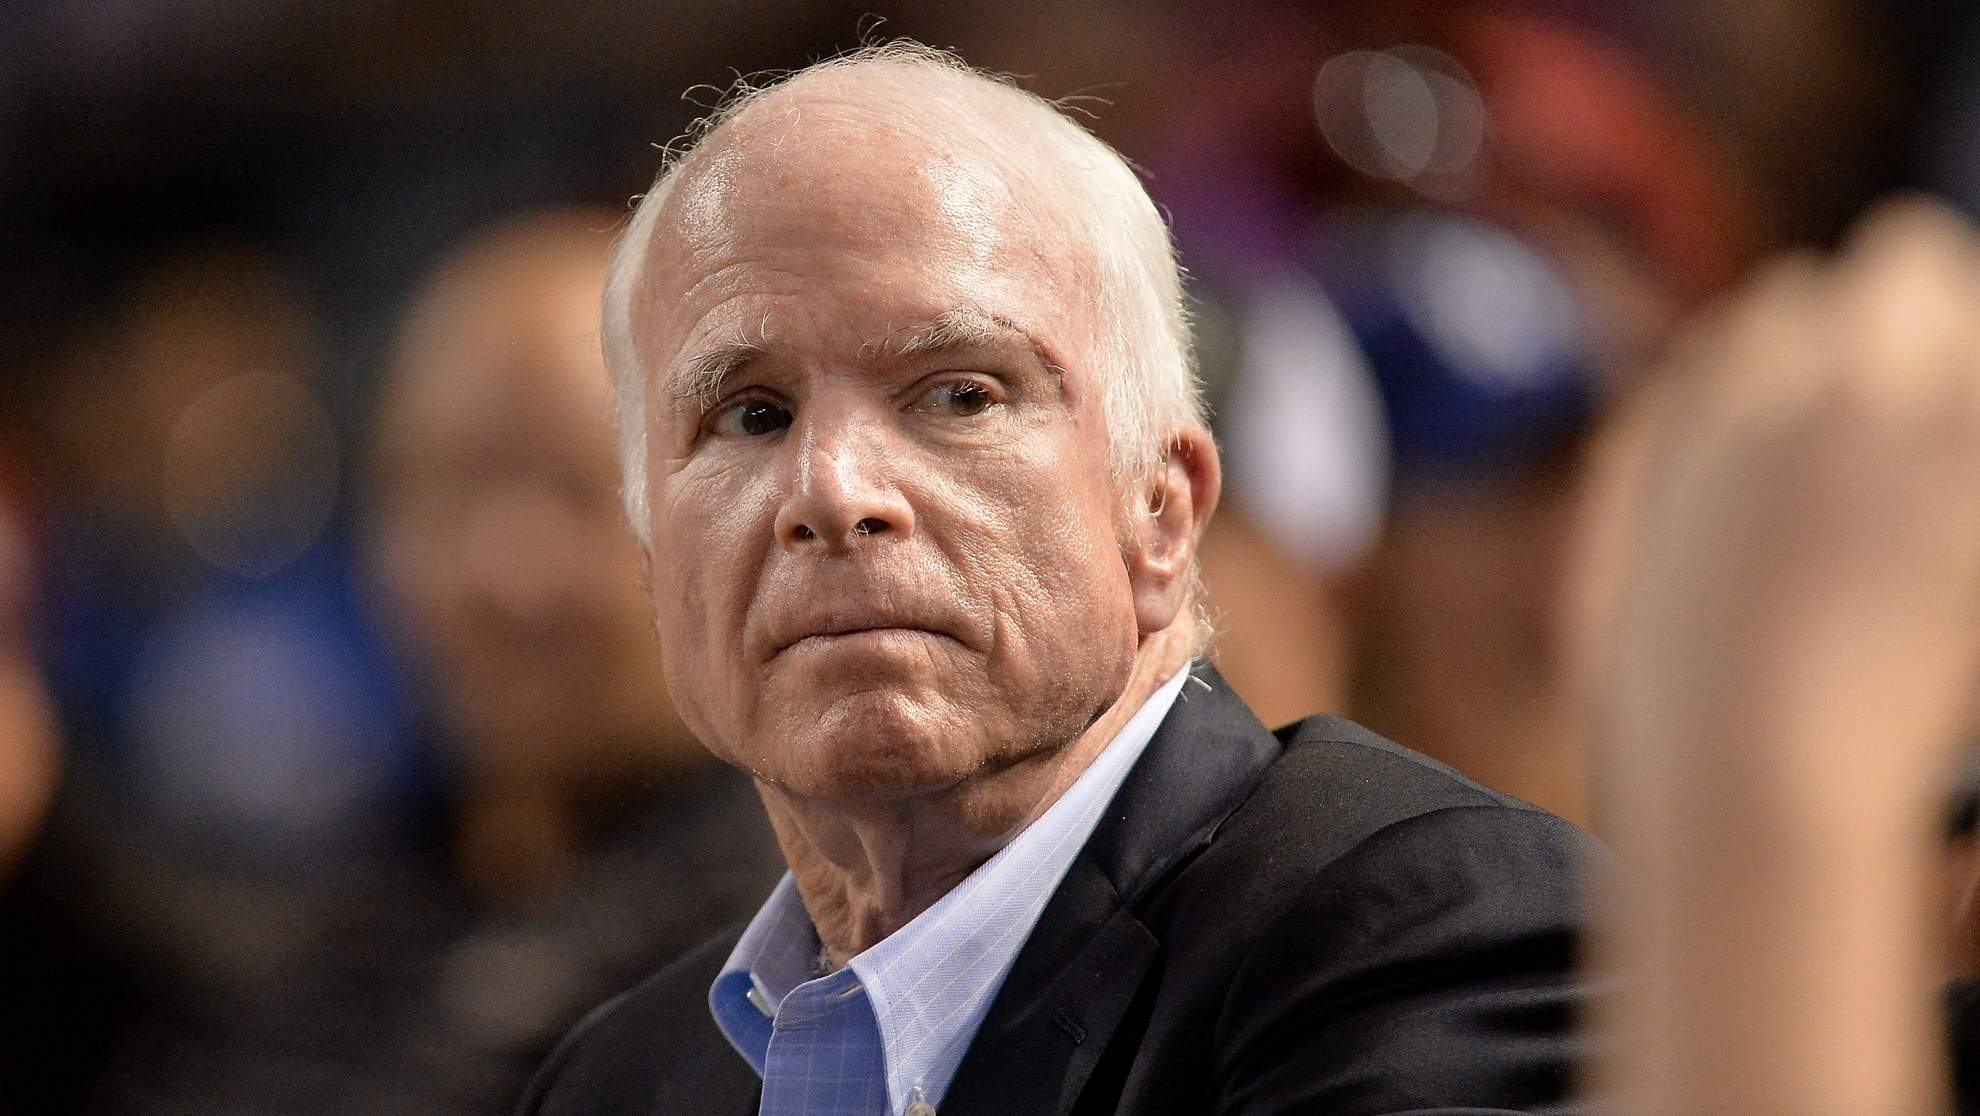 How John McCain Battled Glioblastoma—an Aggressive Brain Tumor—Since His Cancer Diagnosis